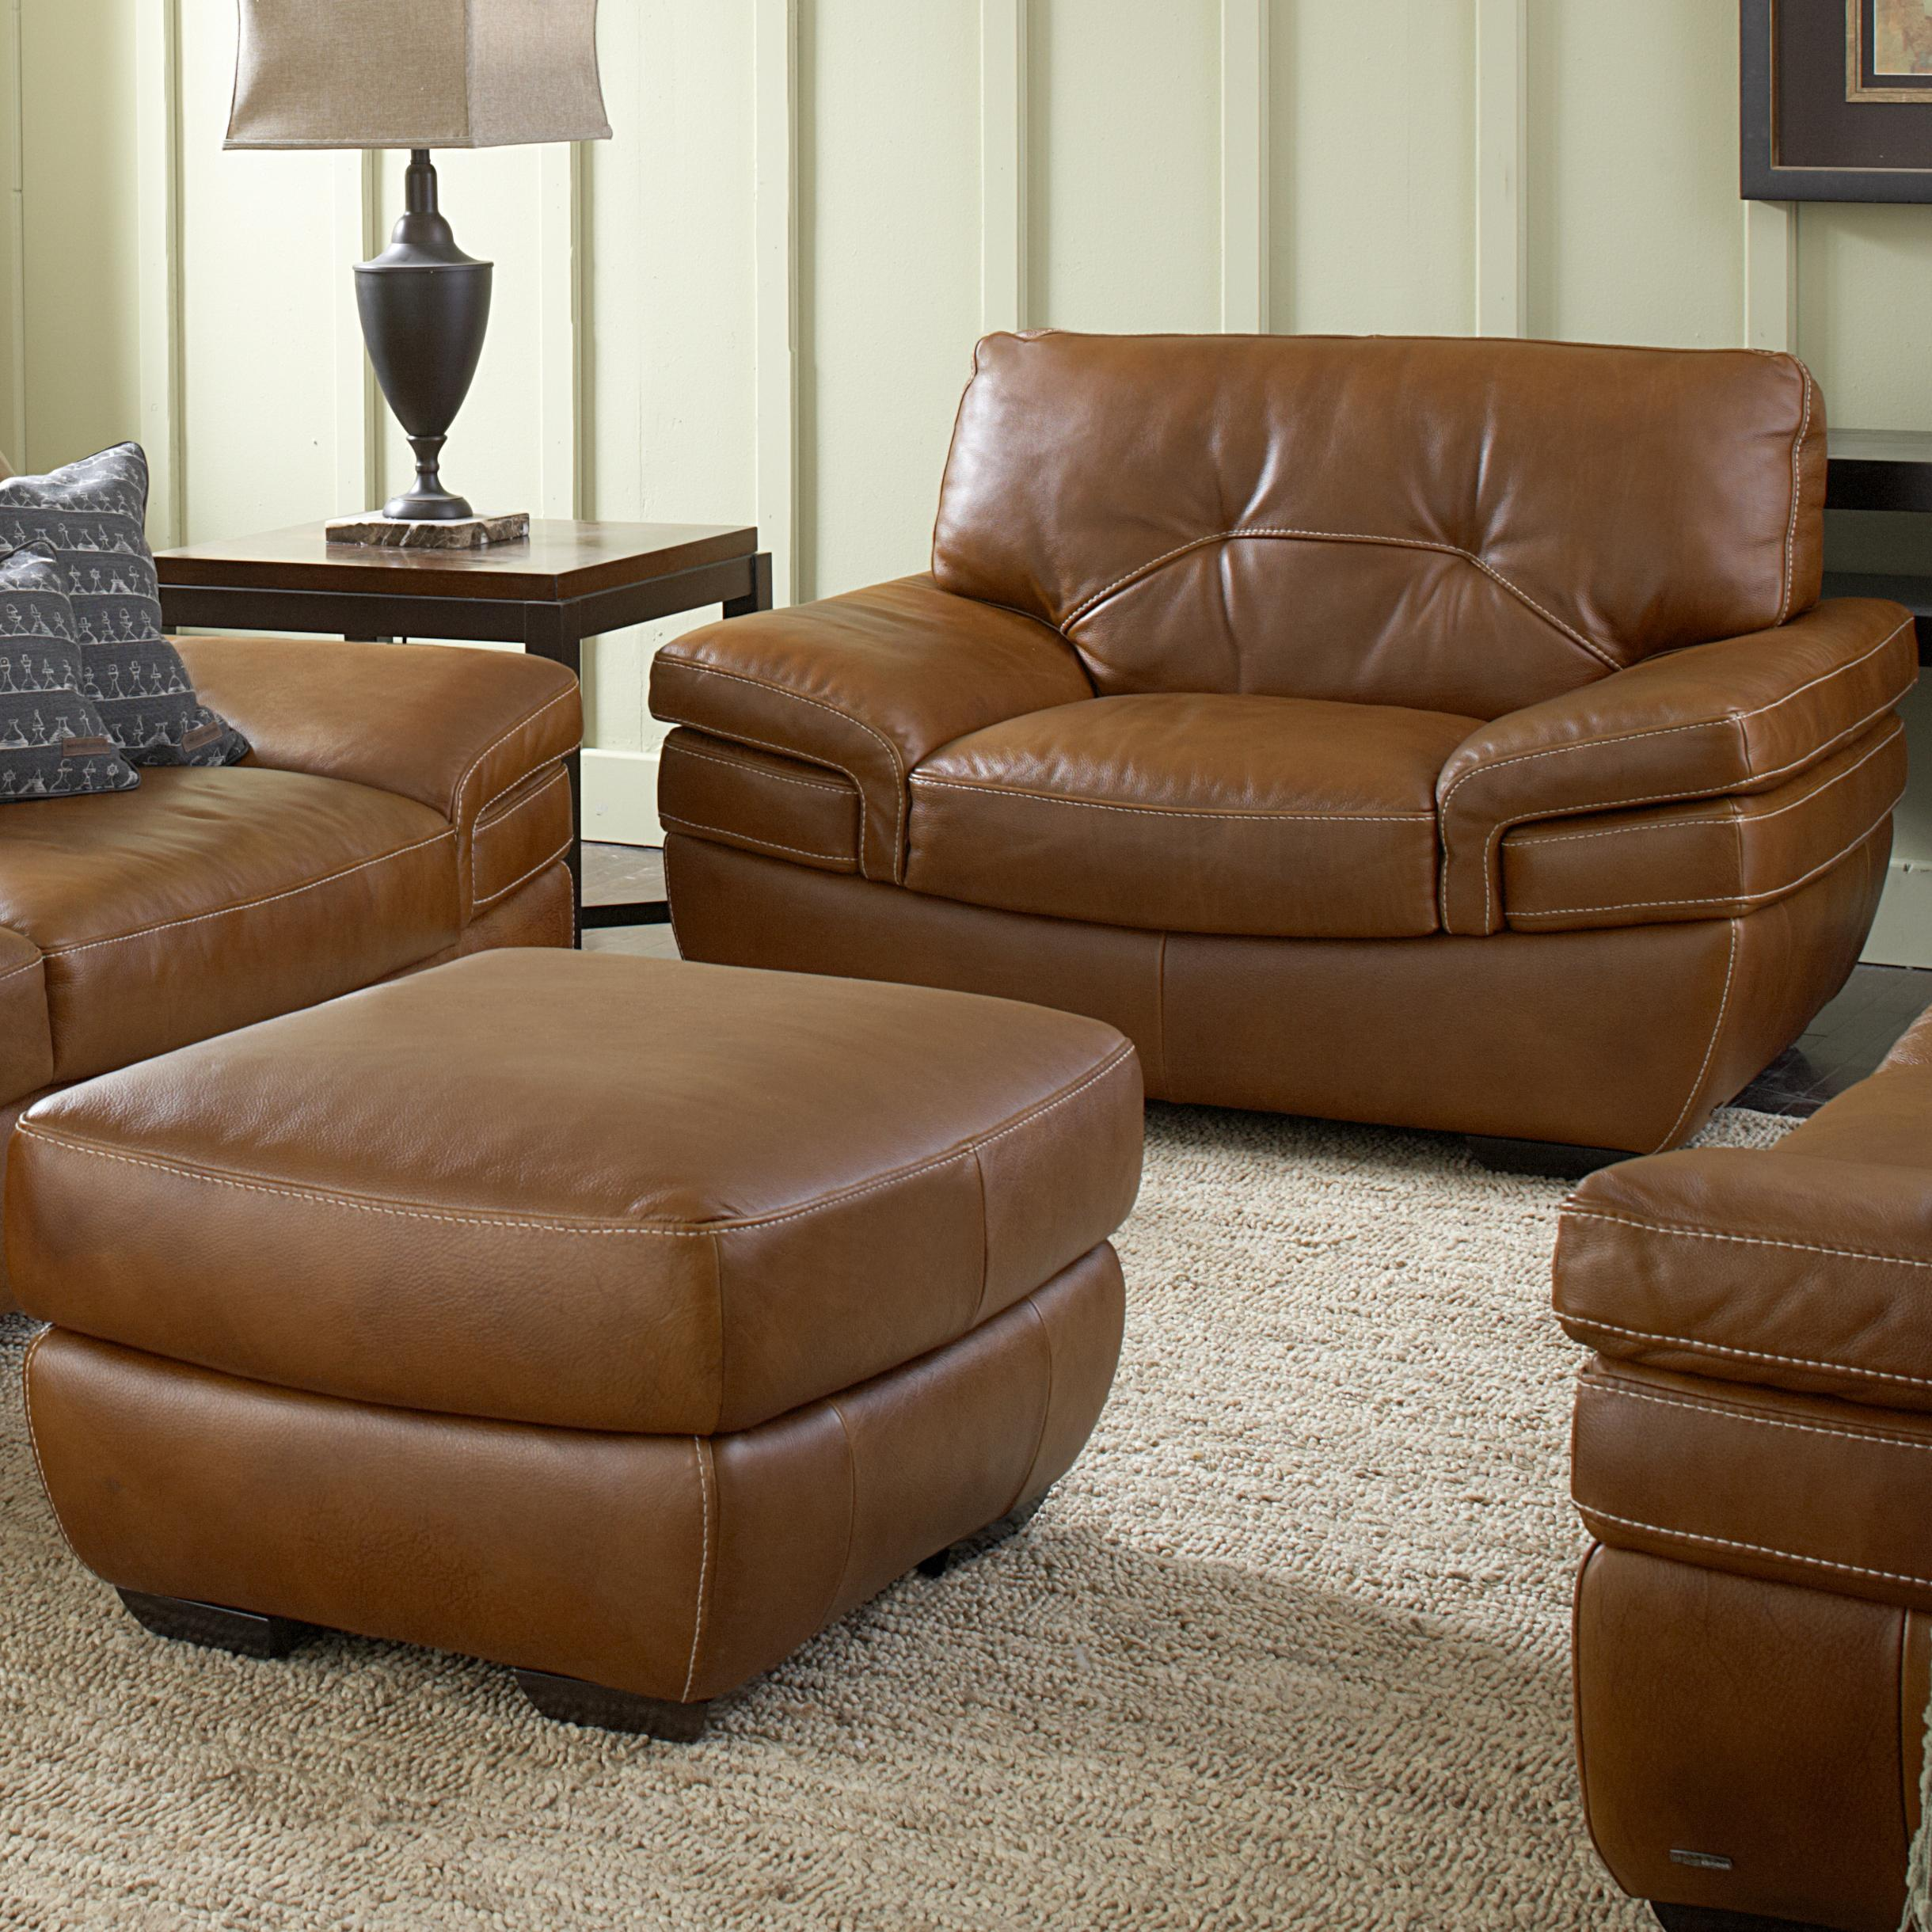 coaster recliner item recliners leatherette products leather with b casual glider ottoman number ottomans